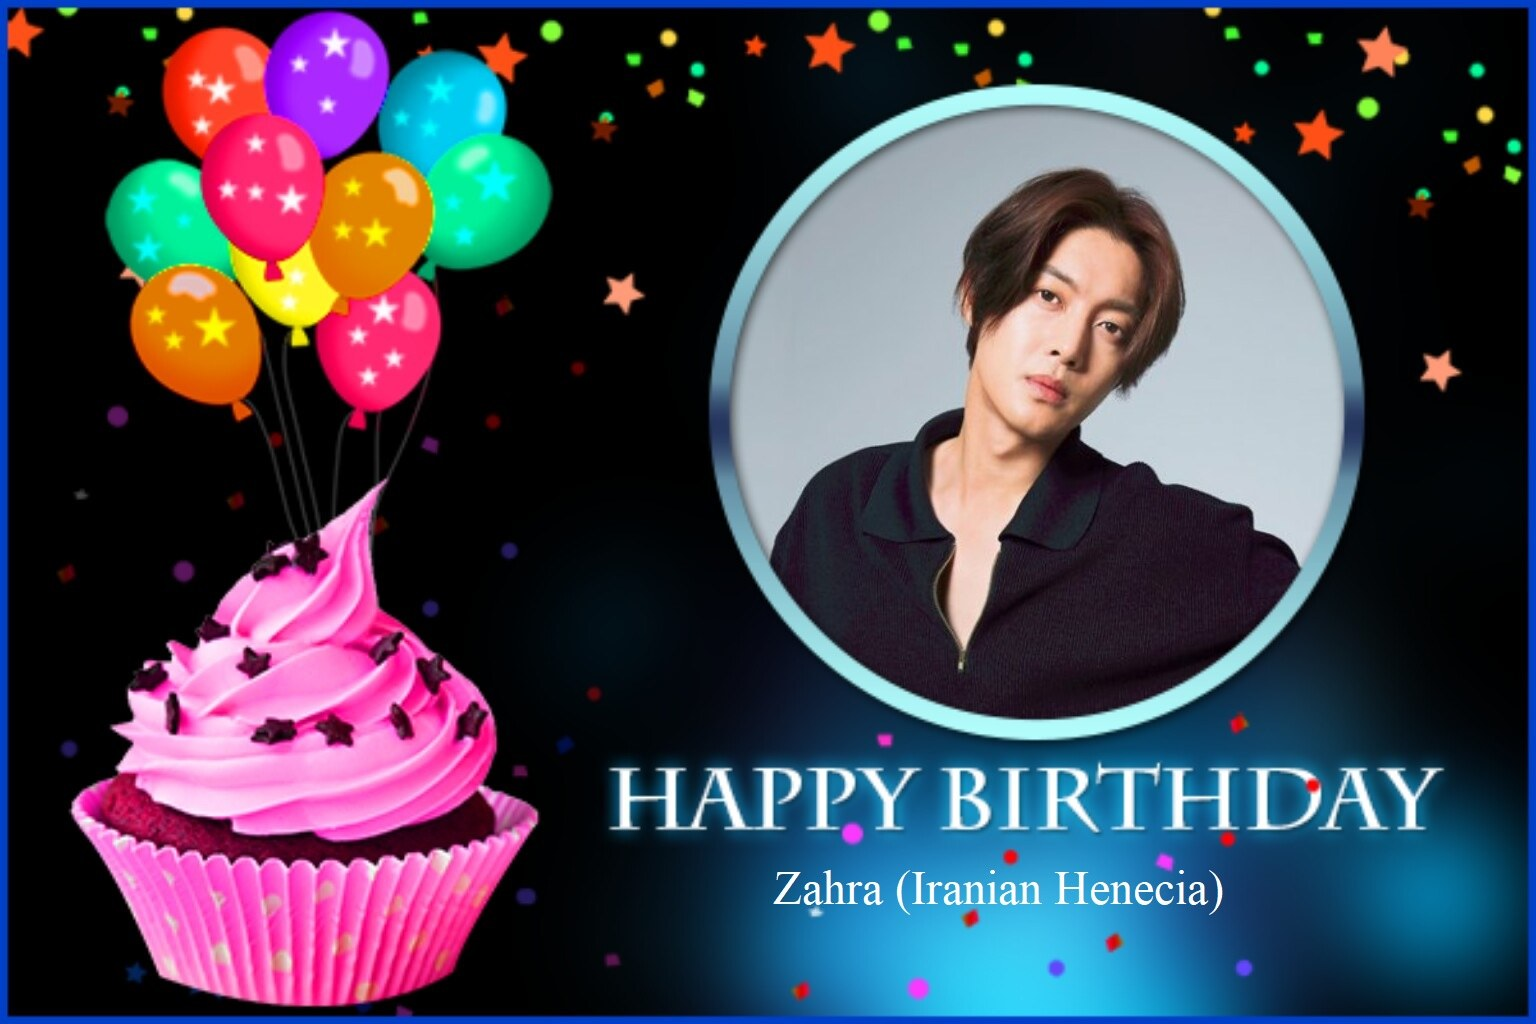 (My Fanart from Happy 32th Birtday of KHJ (19